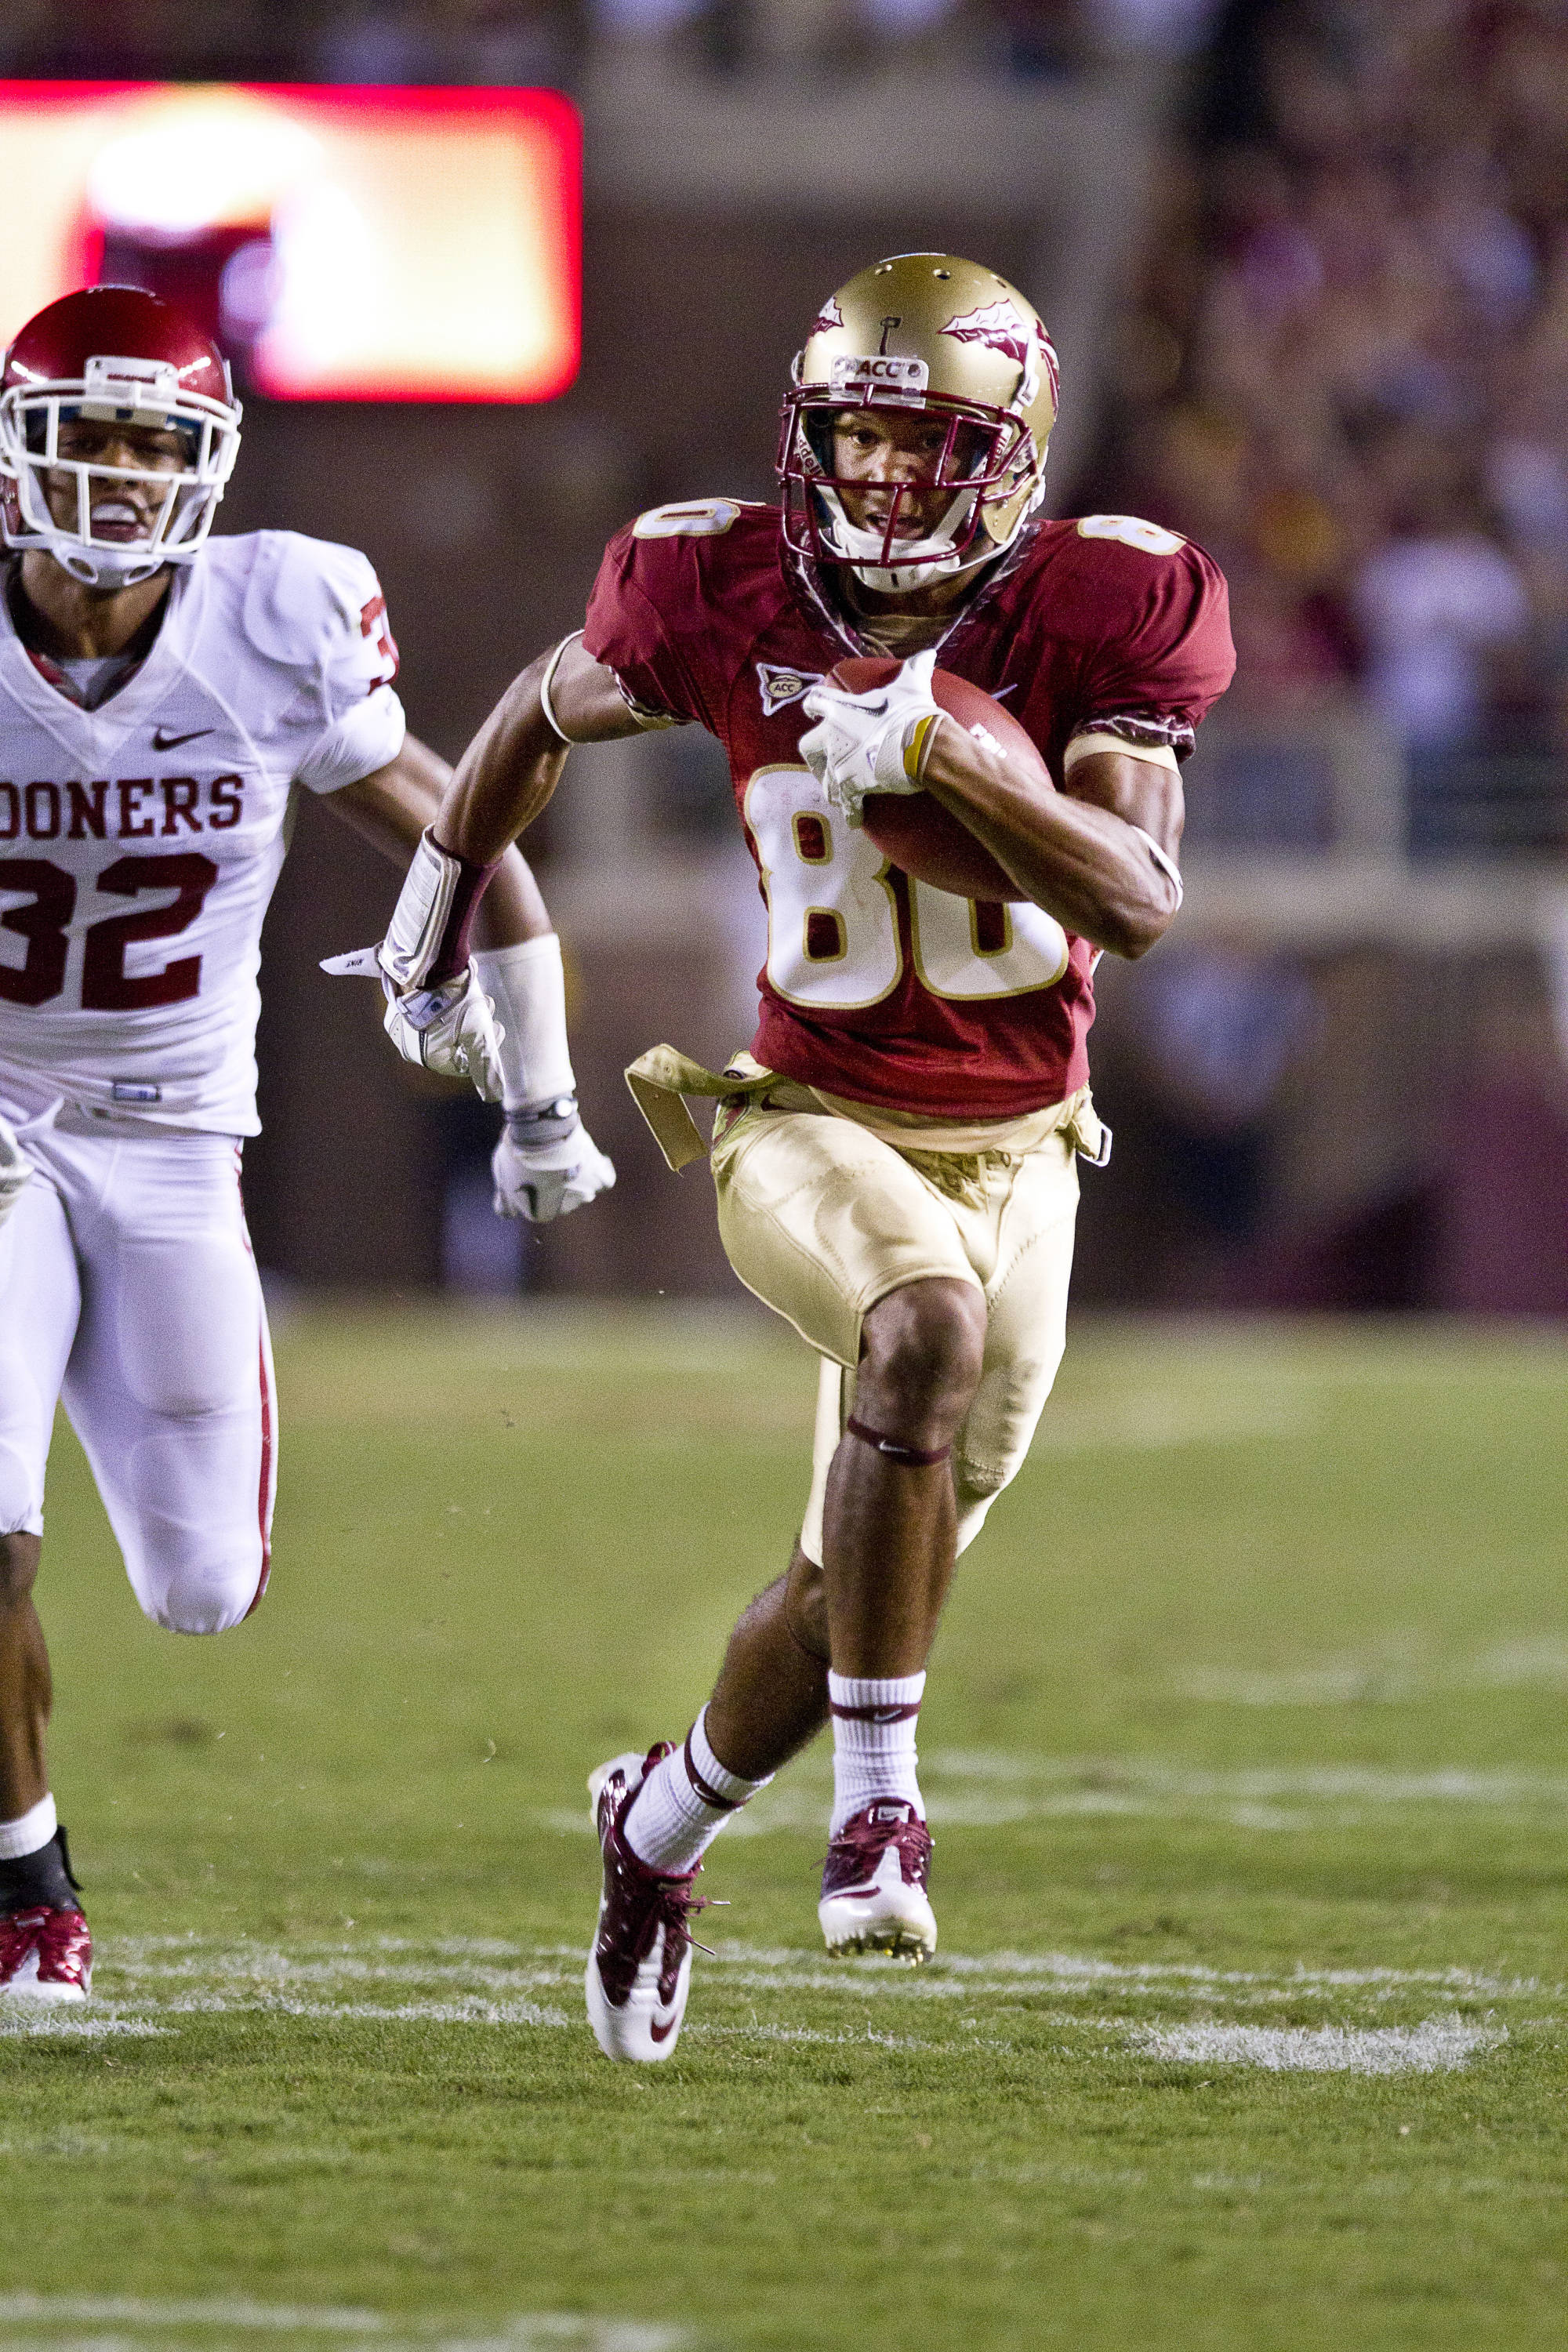 Rashad Greene (80) runs the ball in for FSU's only touchdown in the game against Oklahoma on September 17, 2011.